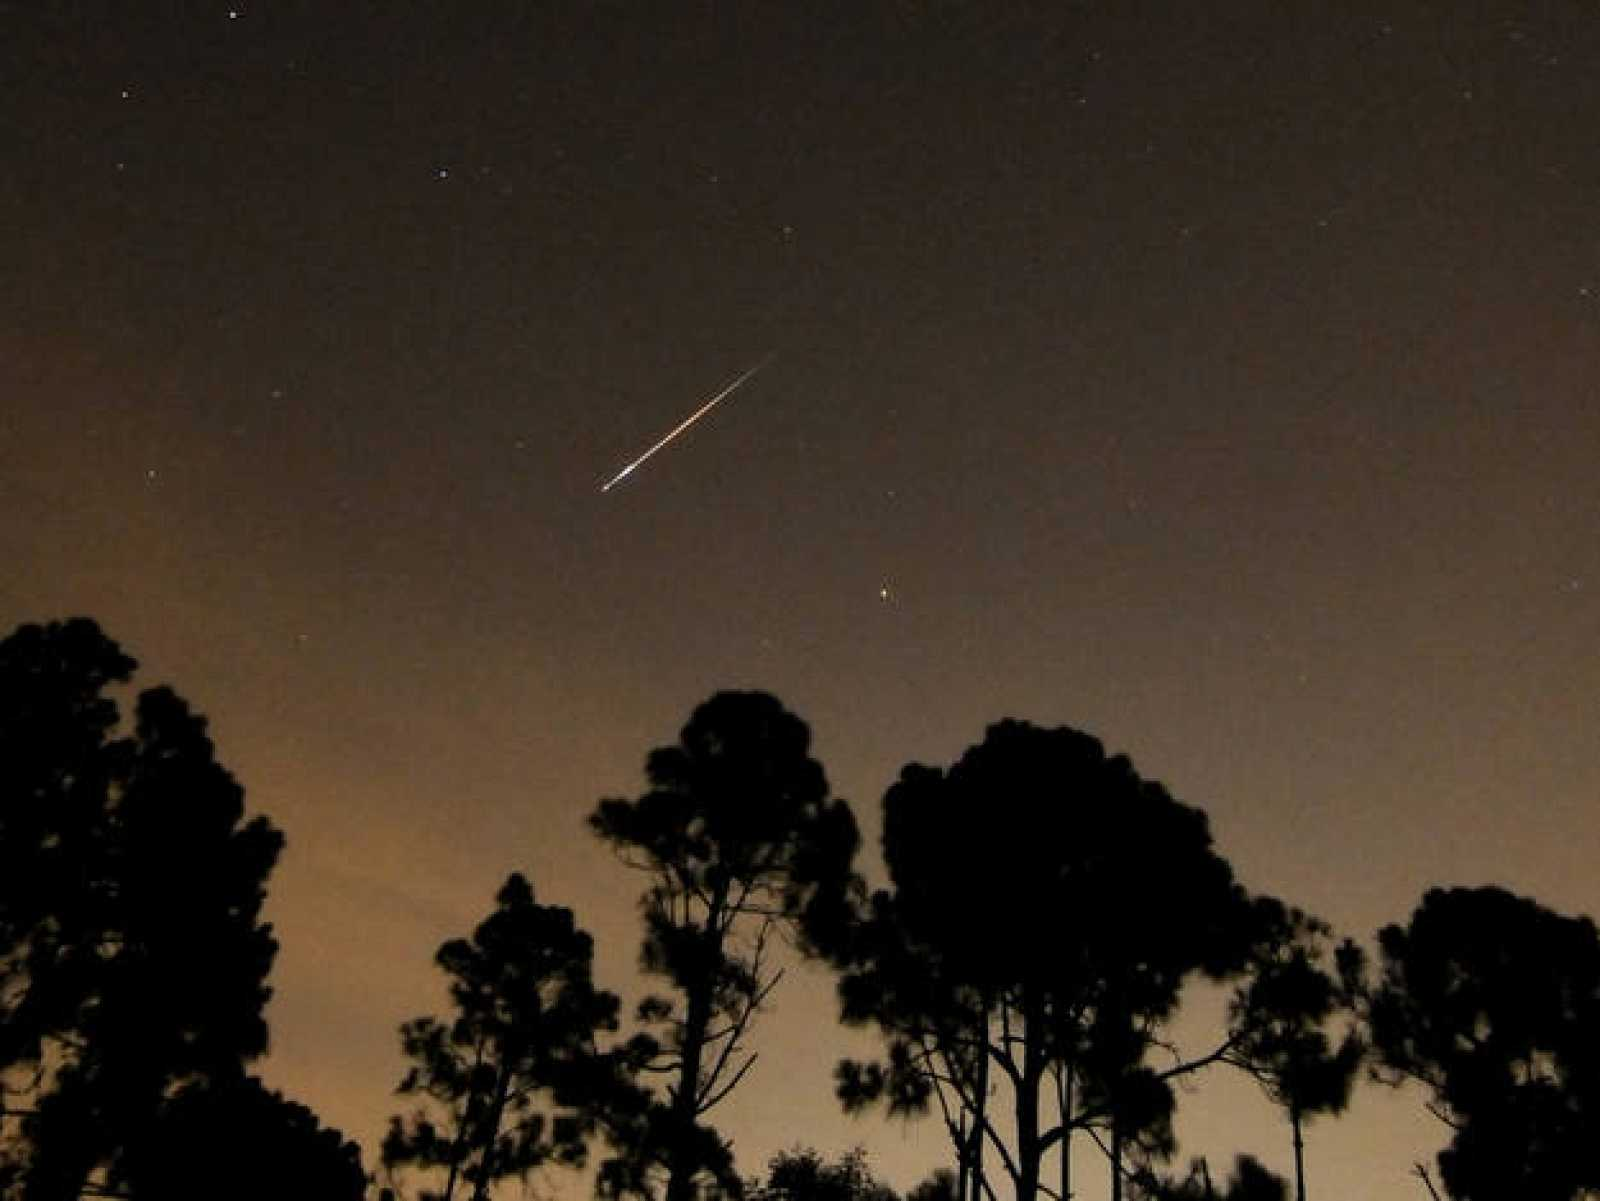 A Perseid meteor streaks towards the horizon during the annual Persied meteor shower in Palm Beach Gardens